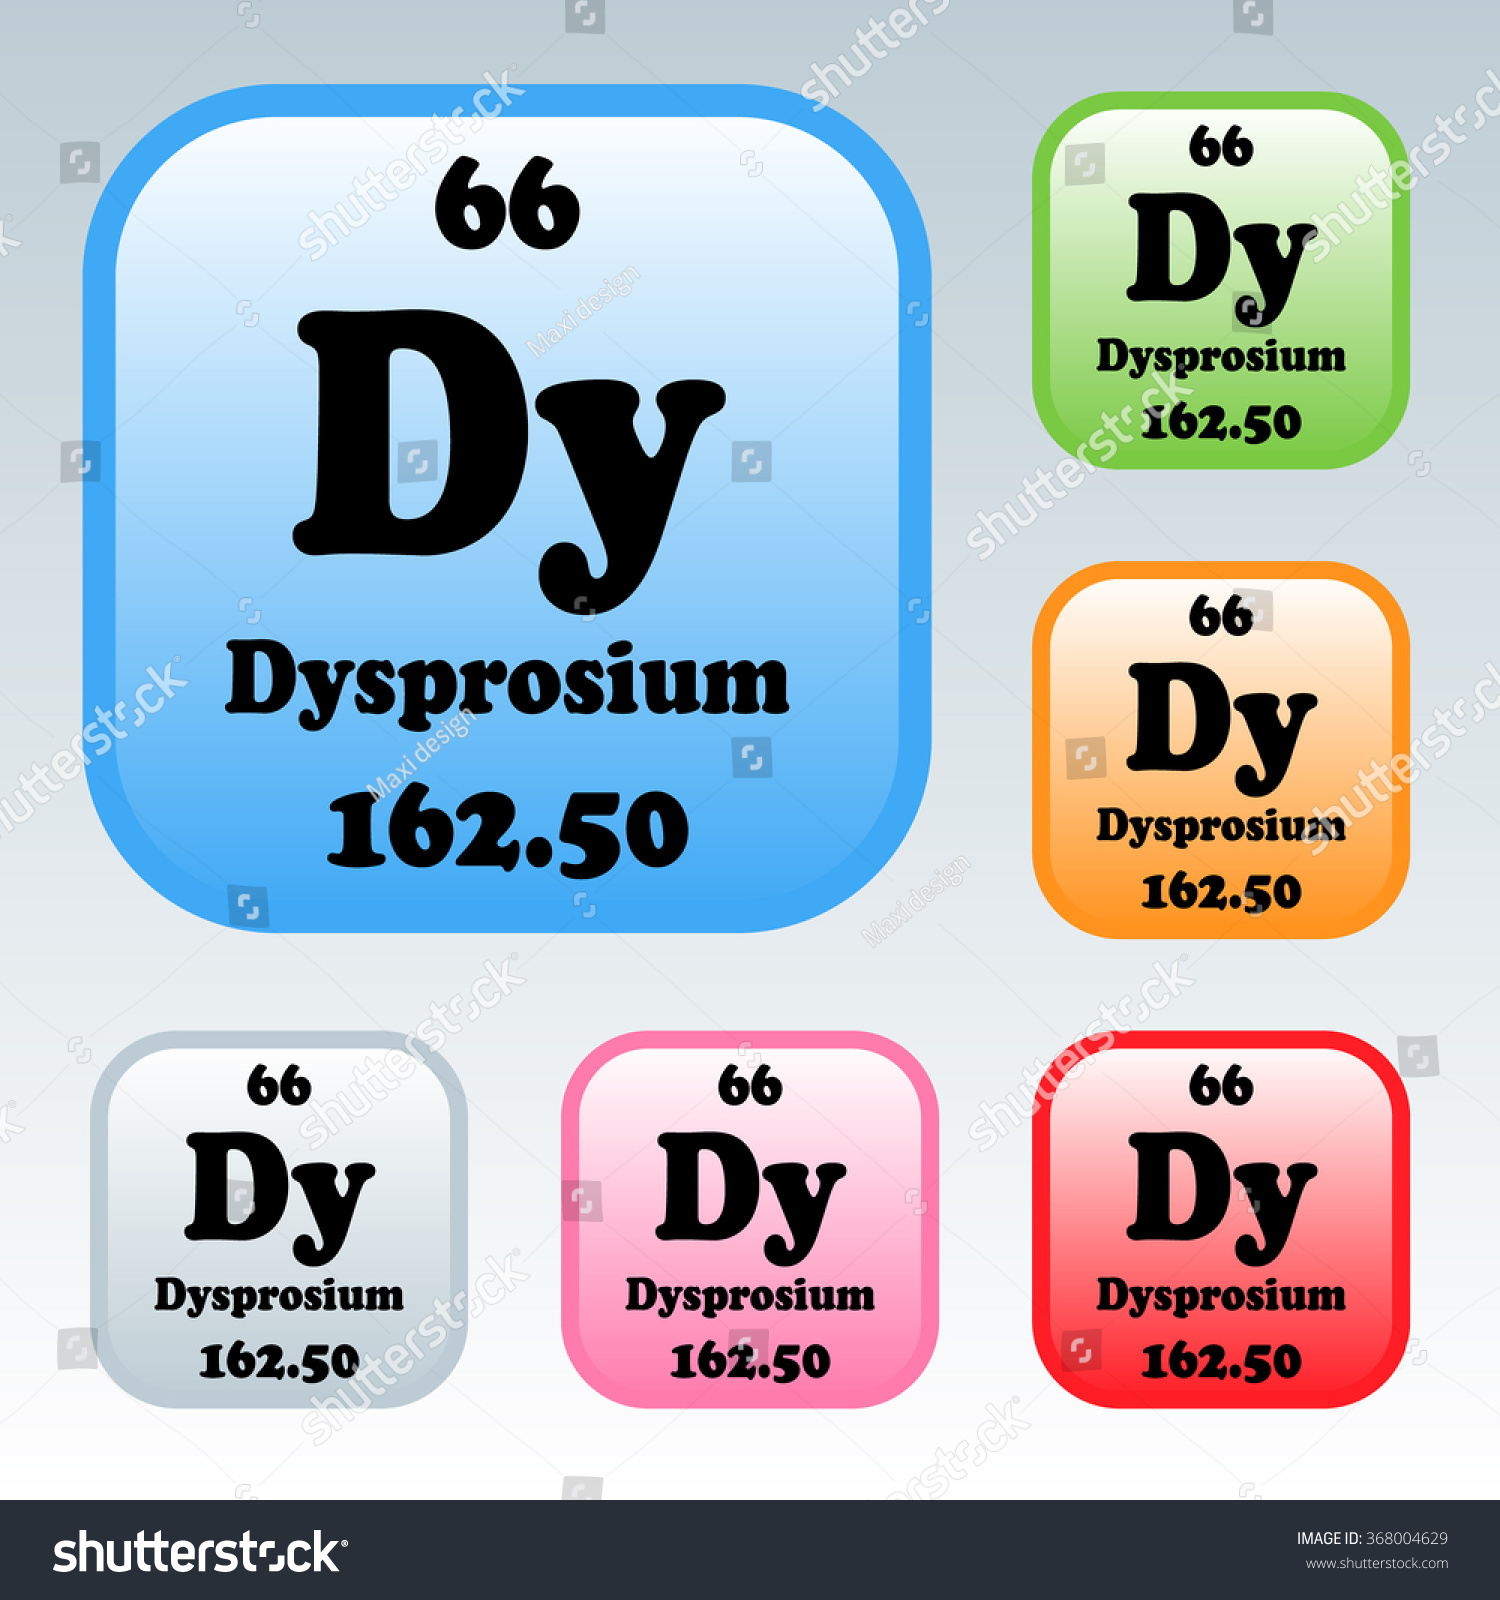 Periodic table dysprosium choice image periodic table images element 66 periodic table choice image periodic table images dy in periodic table gallery periodic table gamestrikefo Image collections